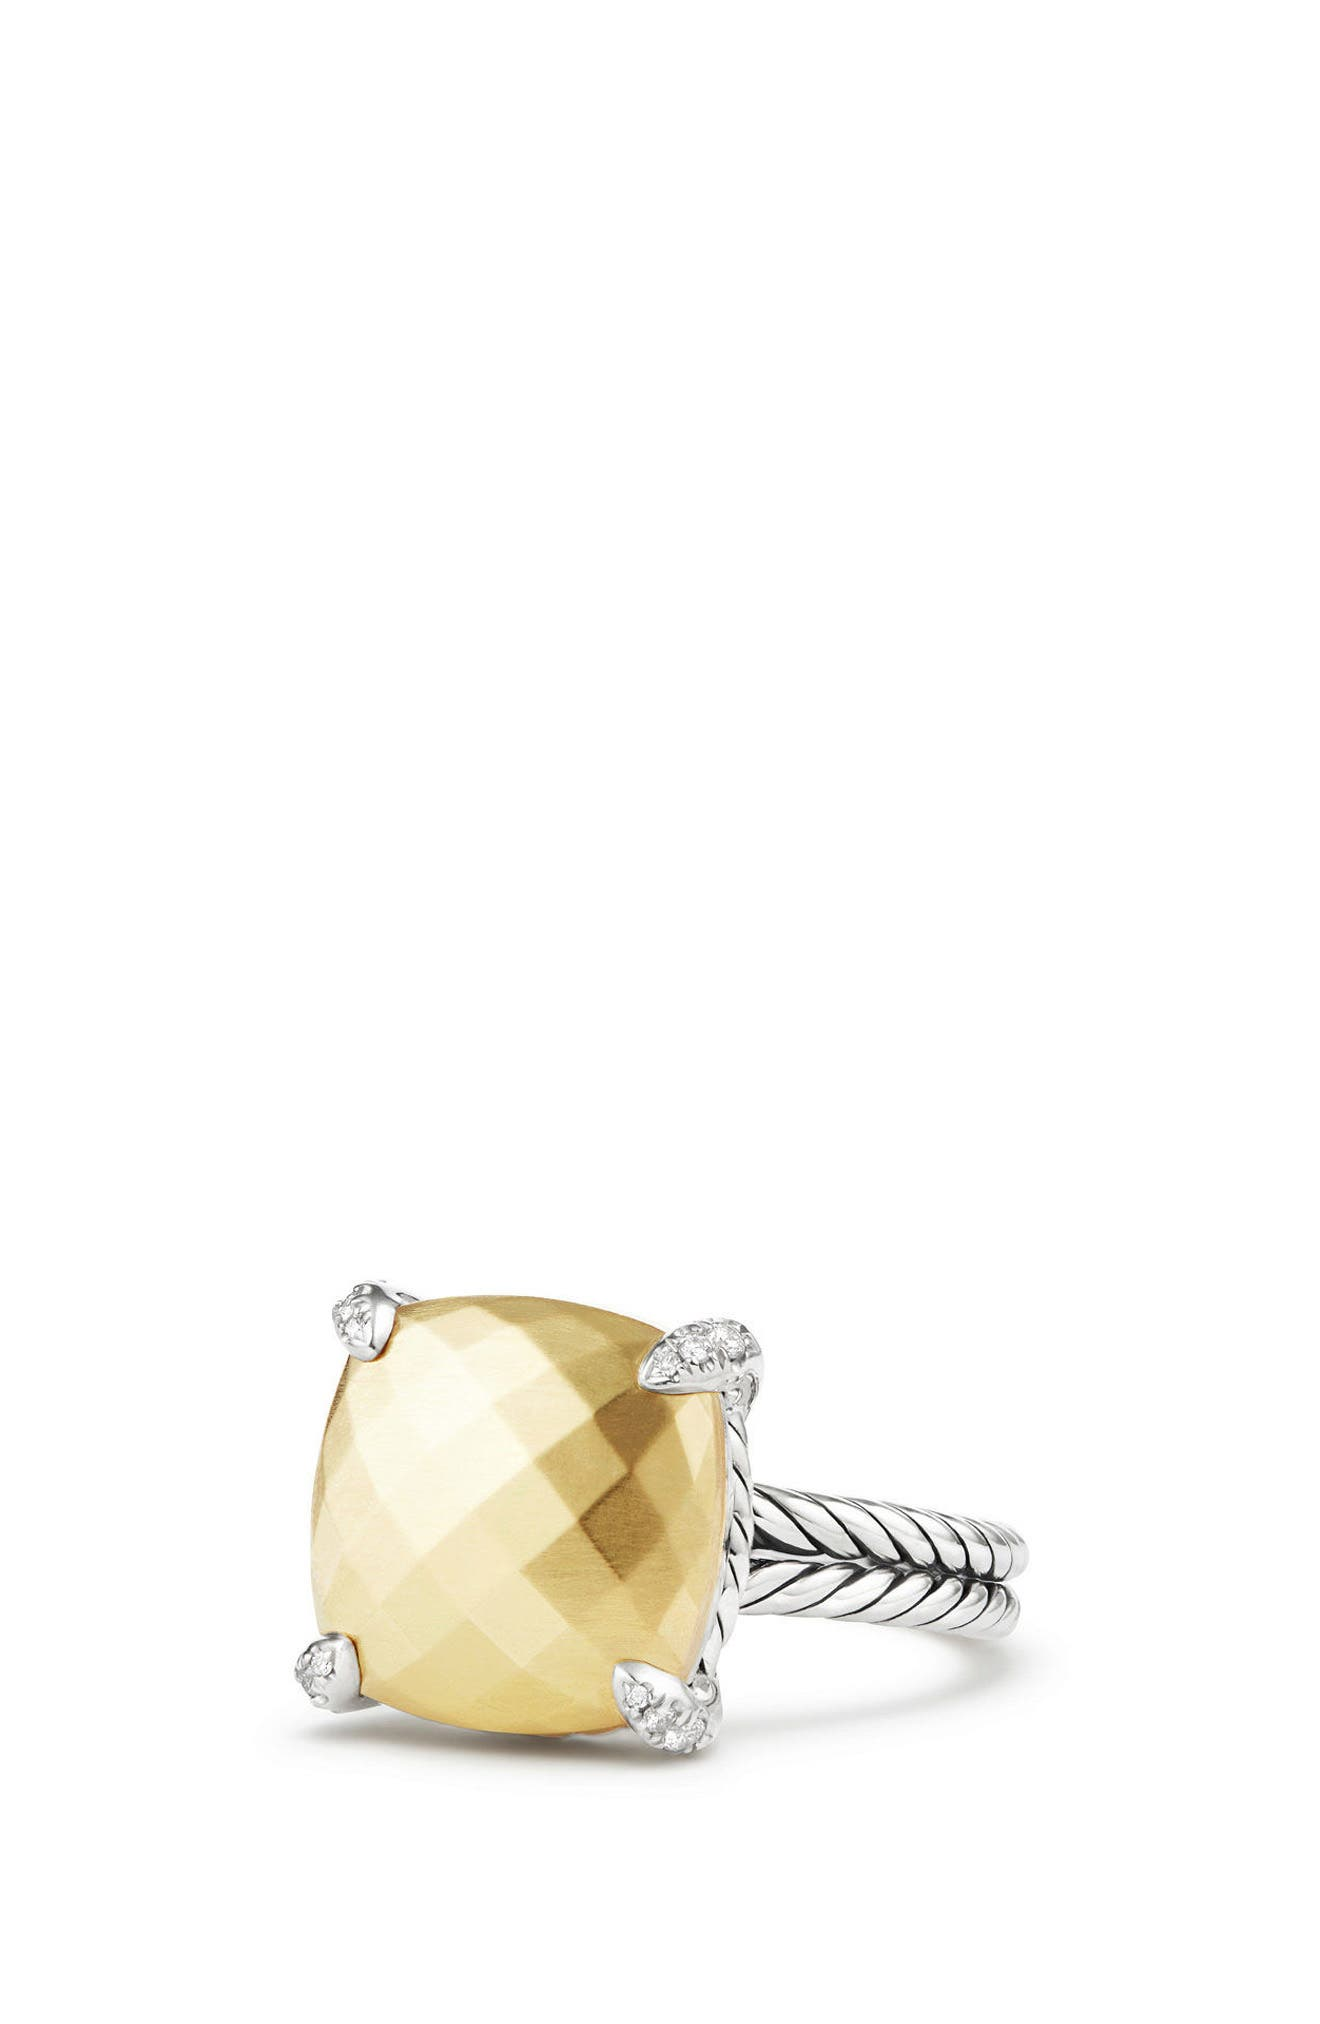 Alternate Image 1 Selected - David Yurman Chatelaine Ring with 18K Gold and Diamonds